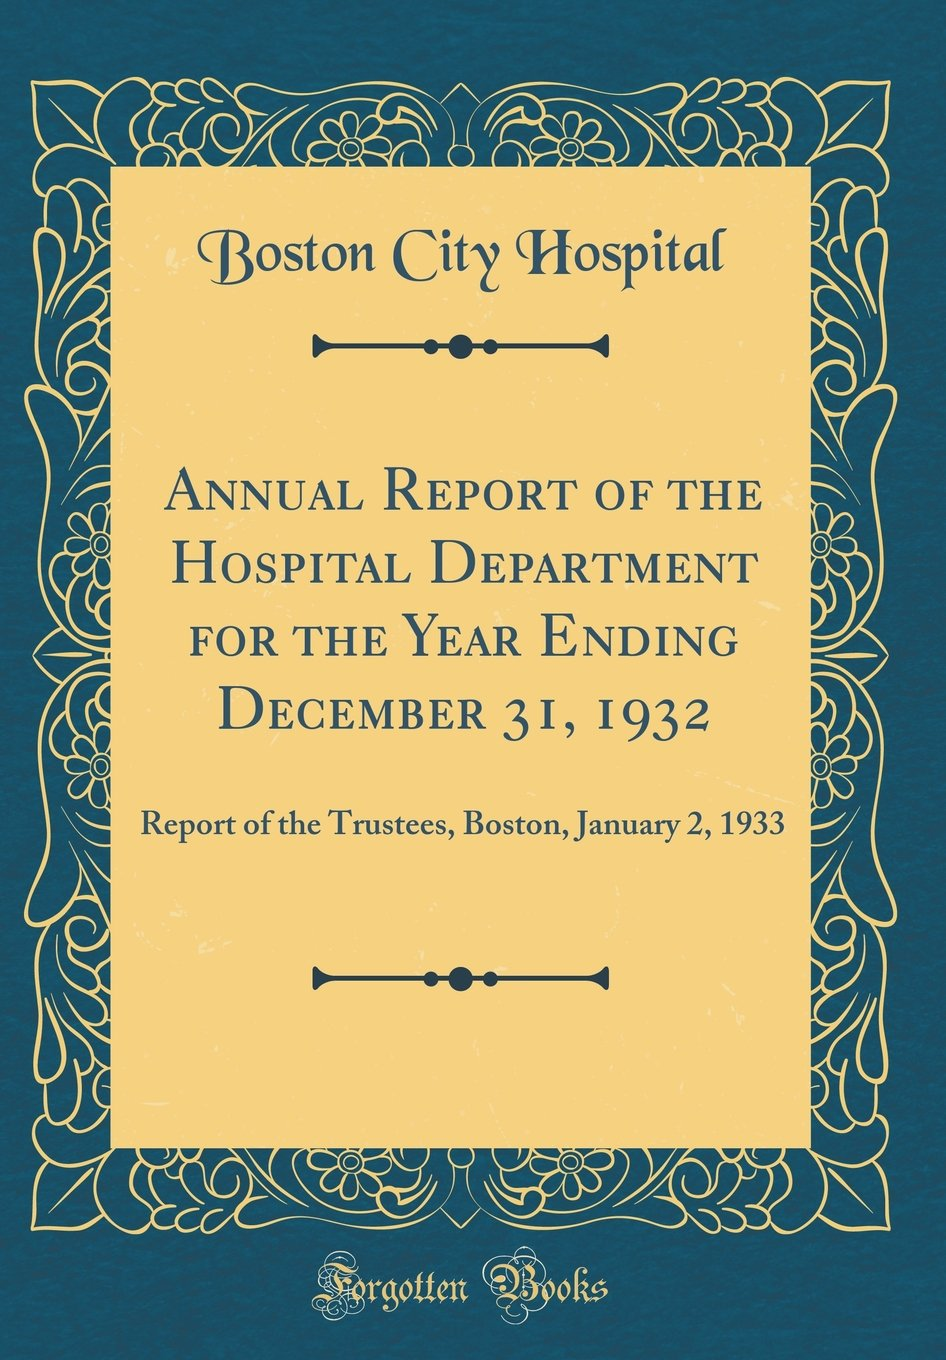 Download Annual Report of the Hospital Department for the Year Ending December 31, 1932: Report of the Trustees, Boston, January 2, 1933 (Classic Reprint) PDF